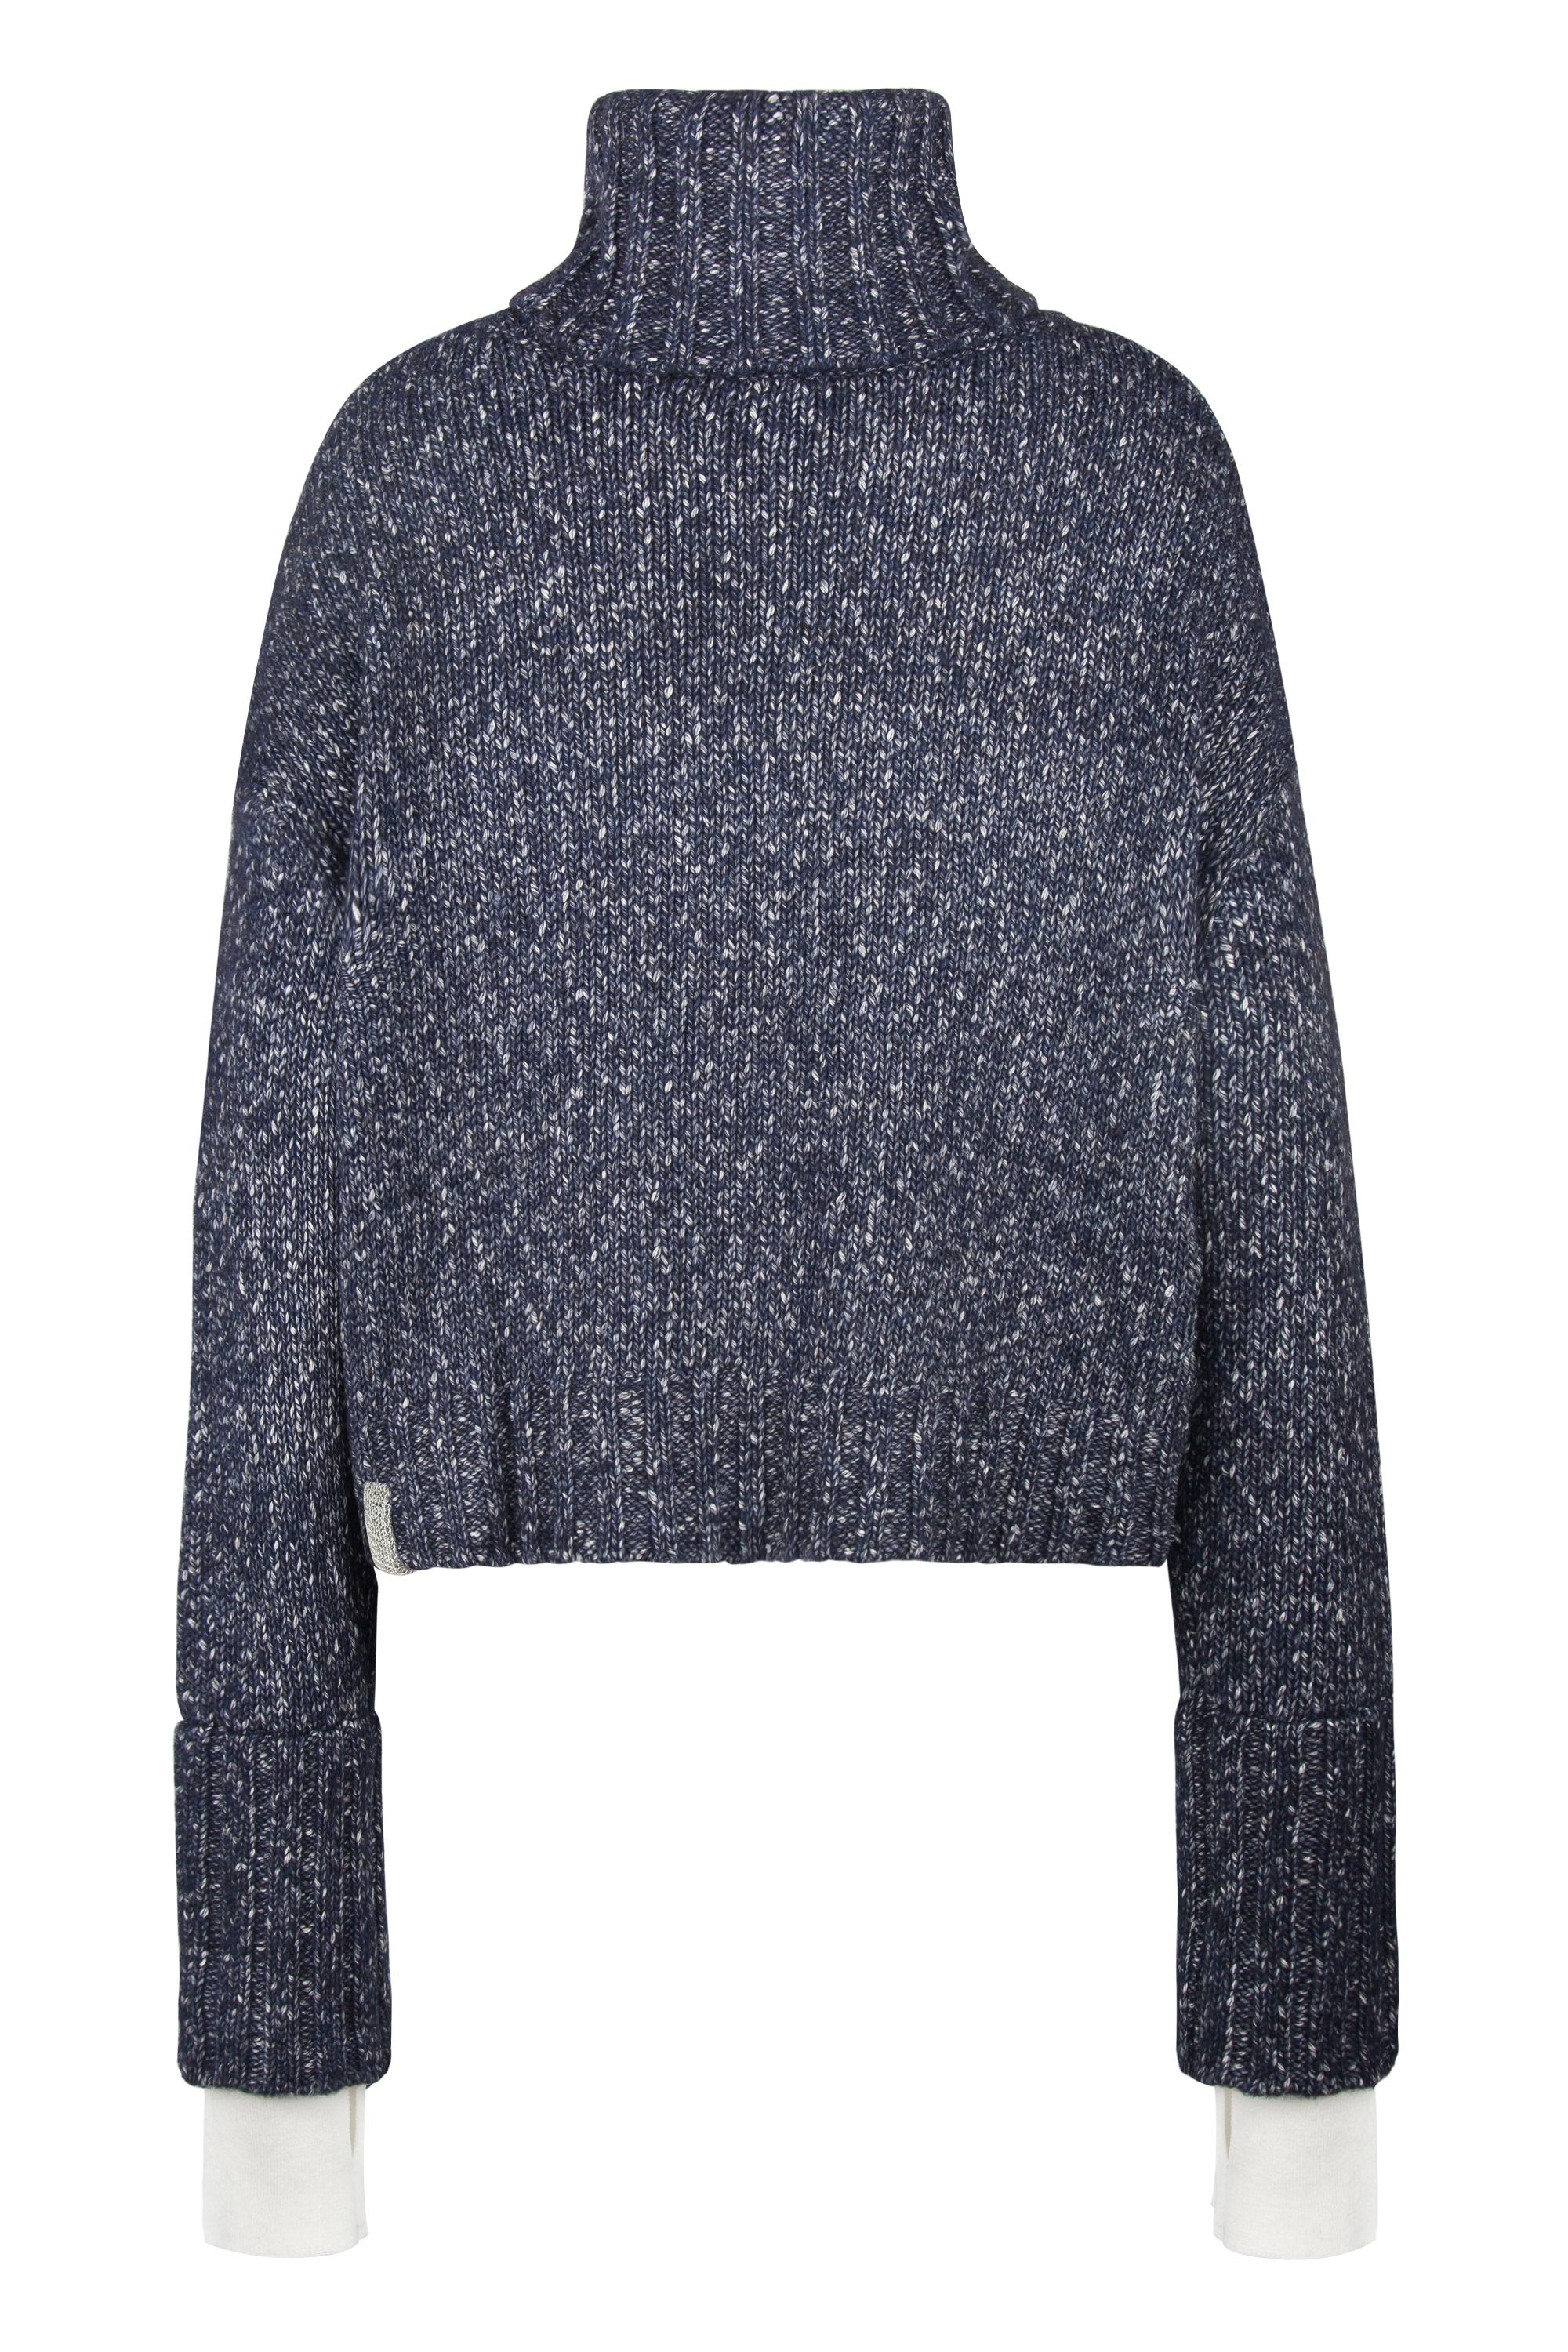 Duffy Jumper